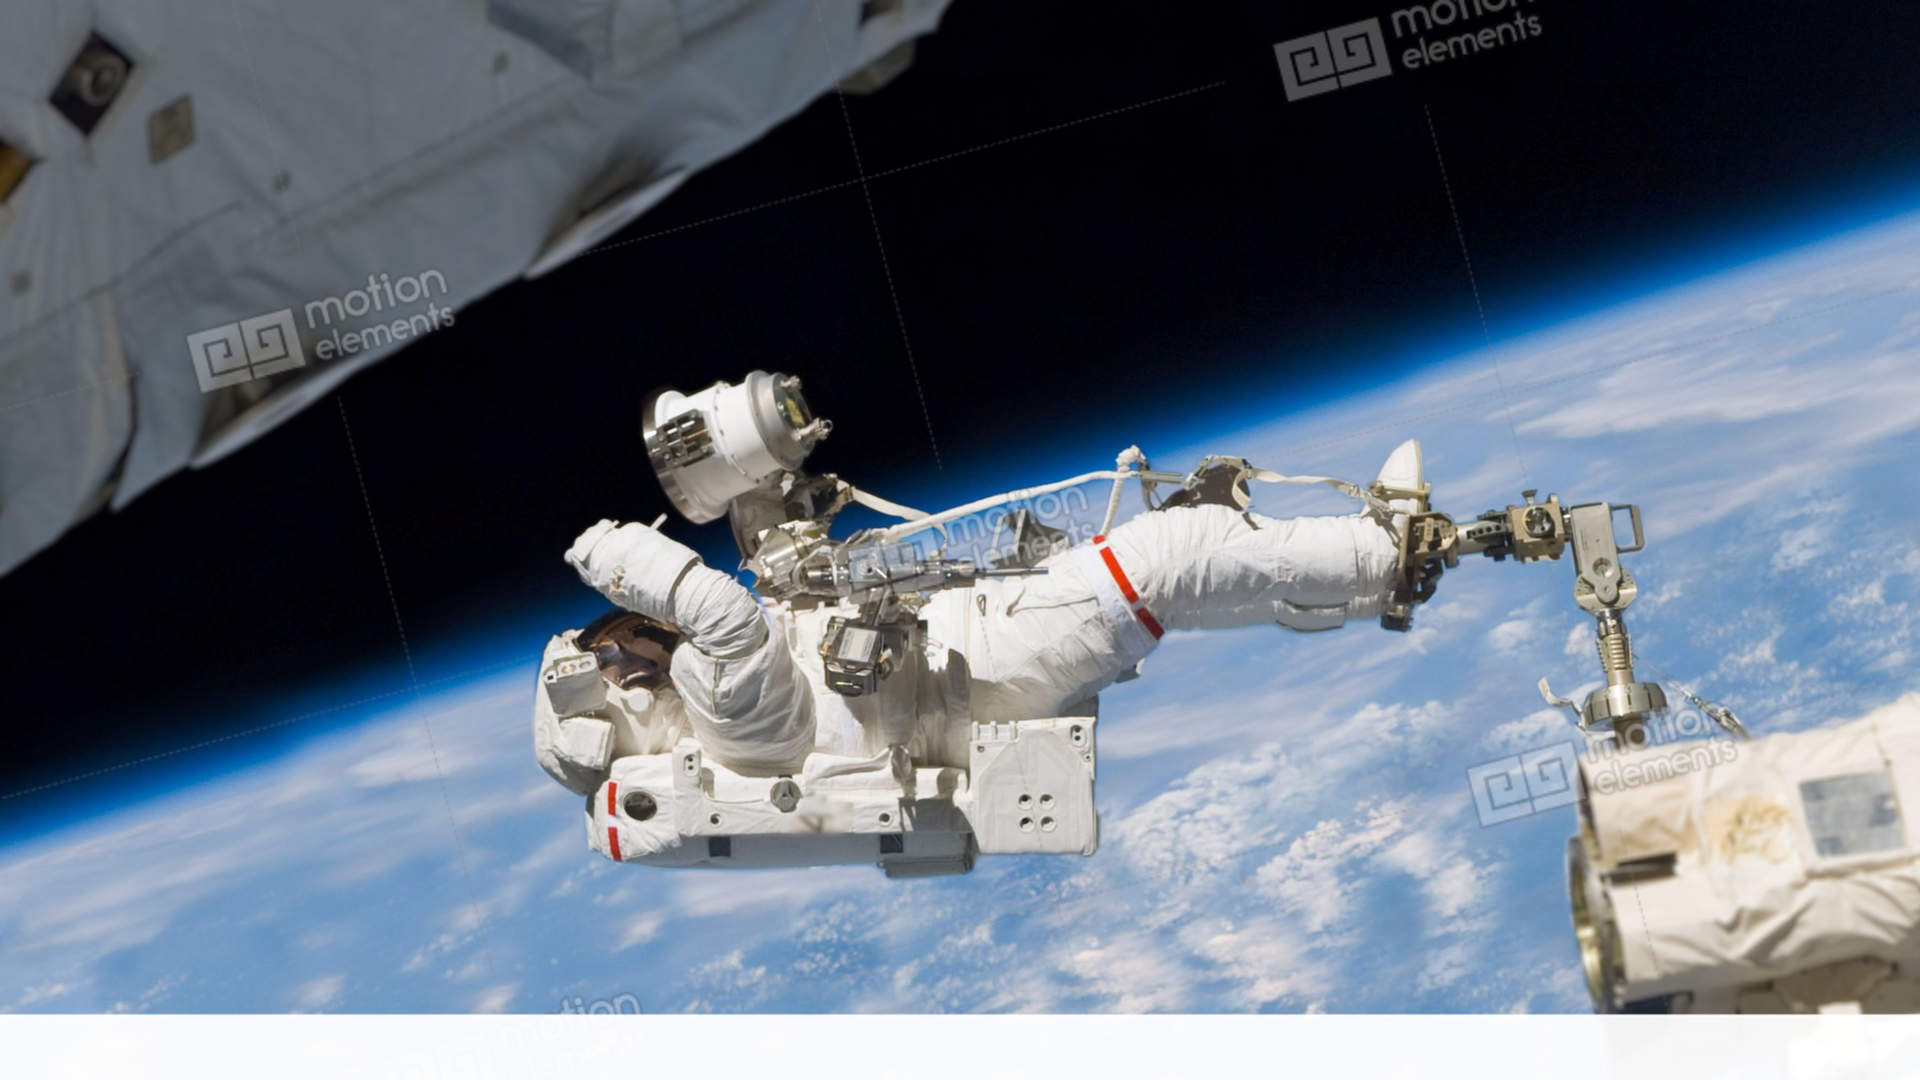 astronaut working in space - photo #40